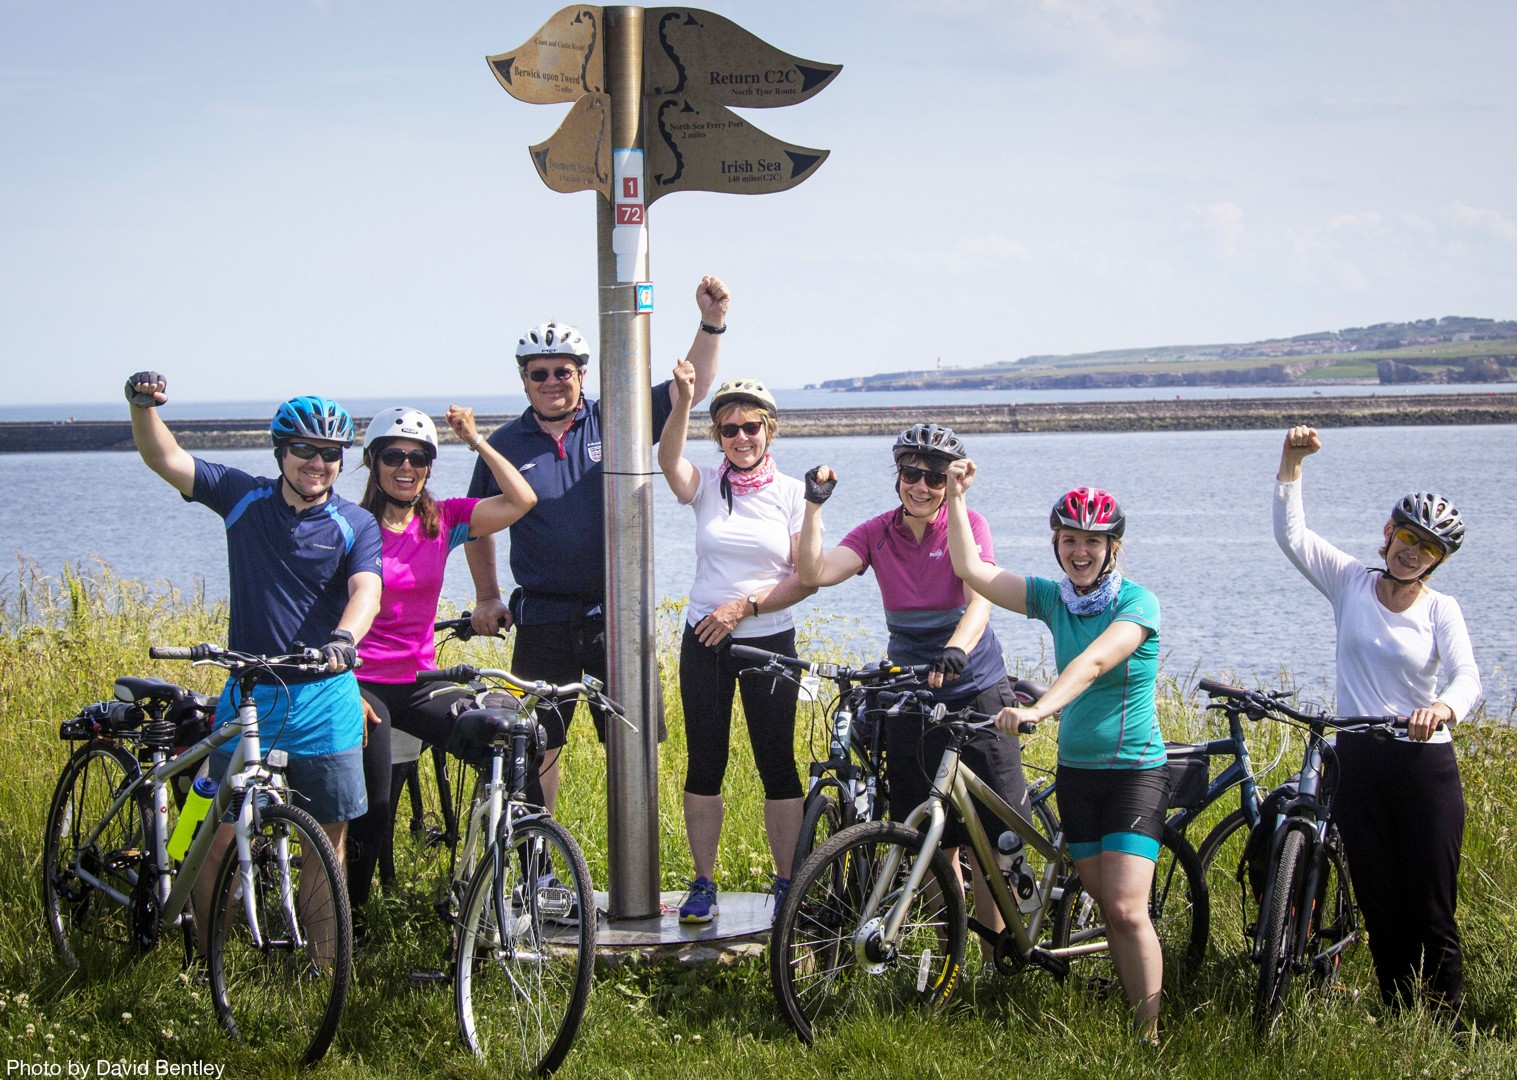 UK-Hadrians-Cycleway-Supported-Leisure-Cycling-Holiday.jpg - UK - Hadrian's Cycleway - Supported Leisure Cycling Holiday - Leisure Cycling